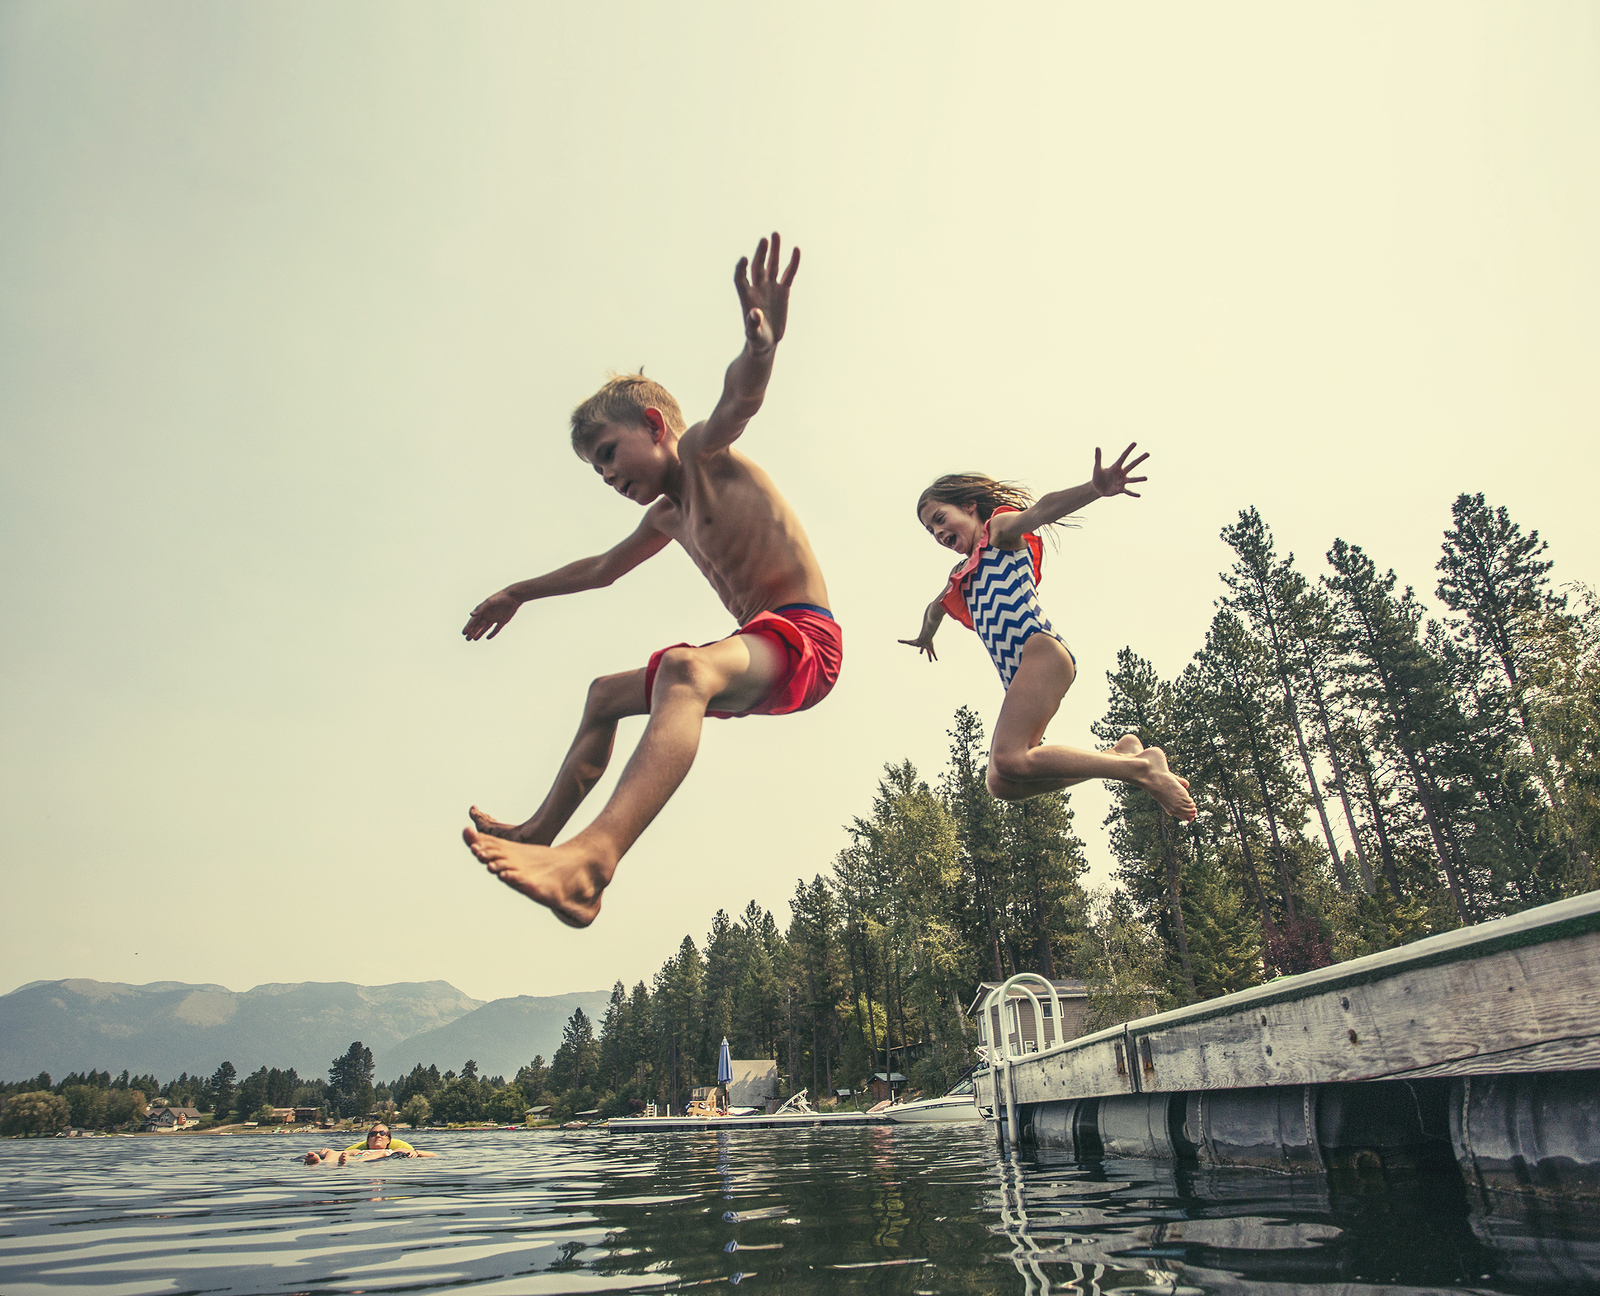 bigstock-Kids-jumping-off-the-dock-into-117925061.jpg